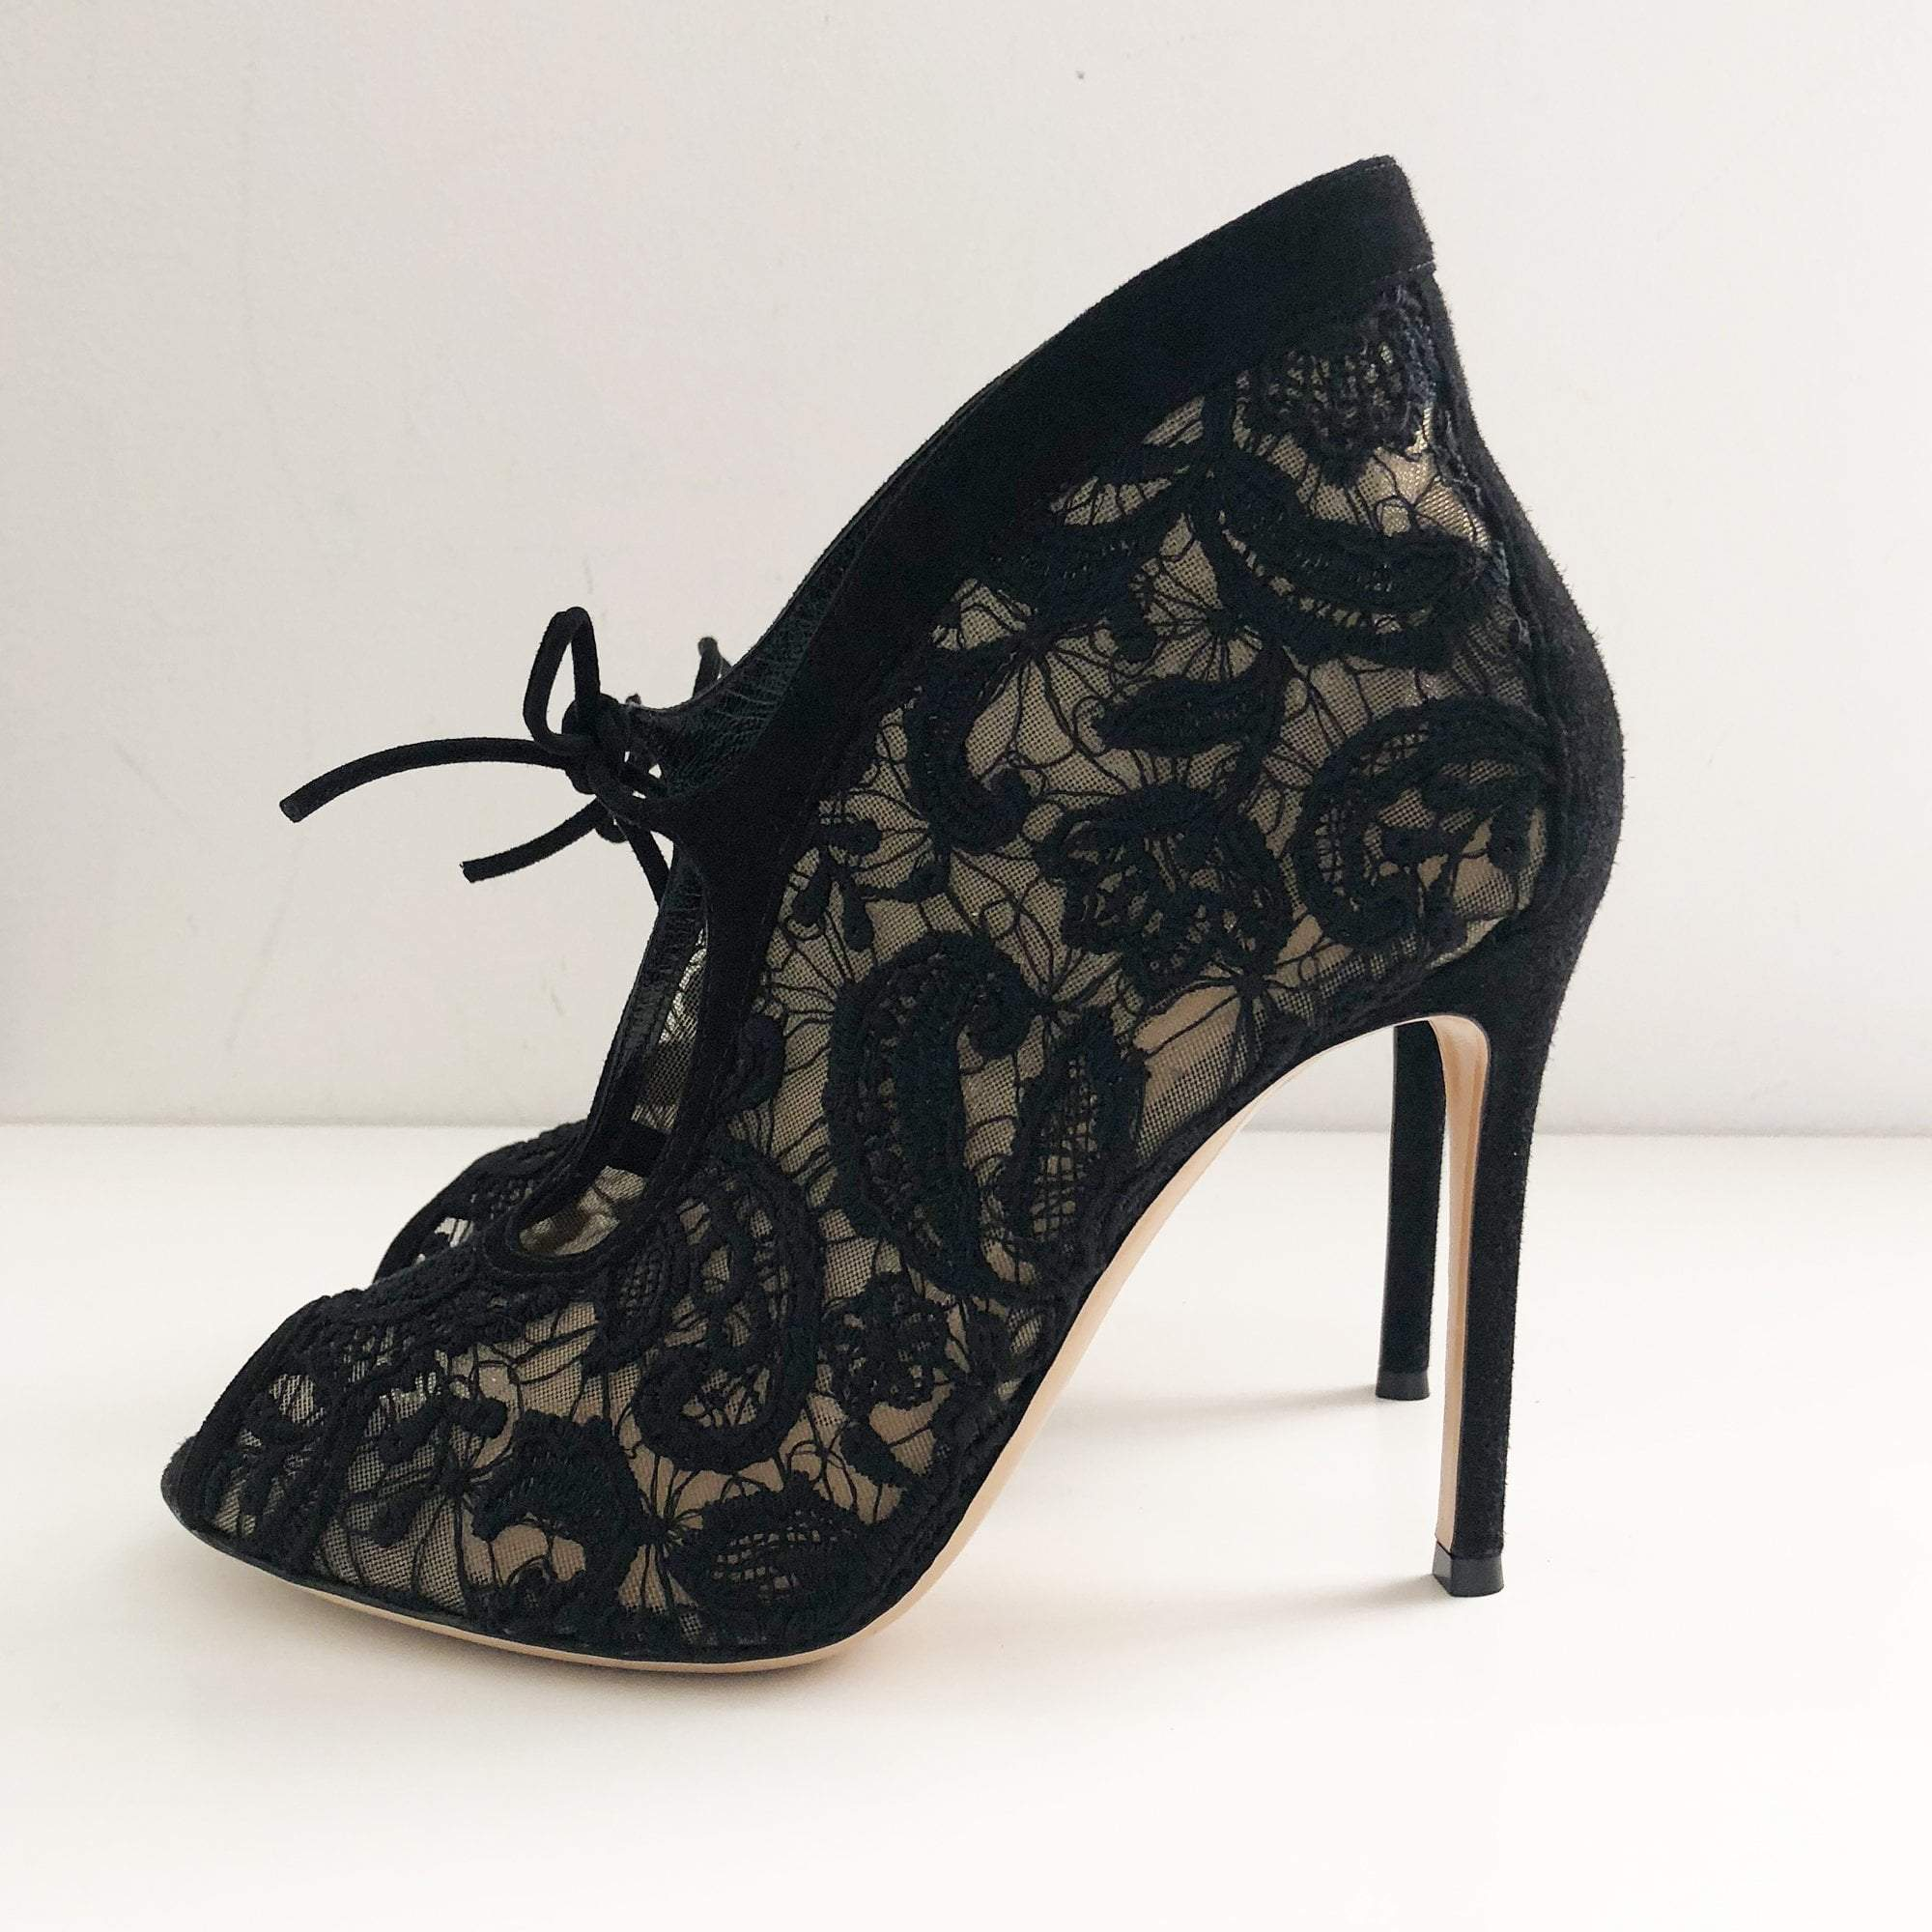 Gianvito Rossi Lace open-toe ankle boots